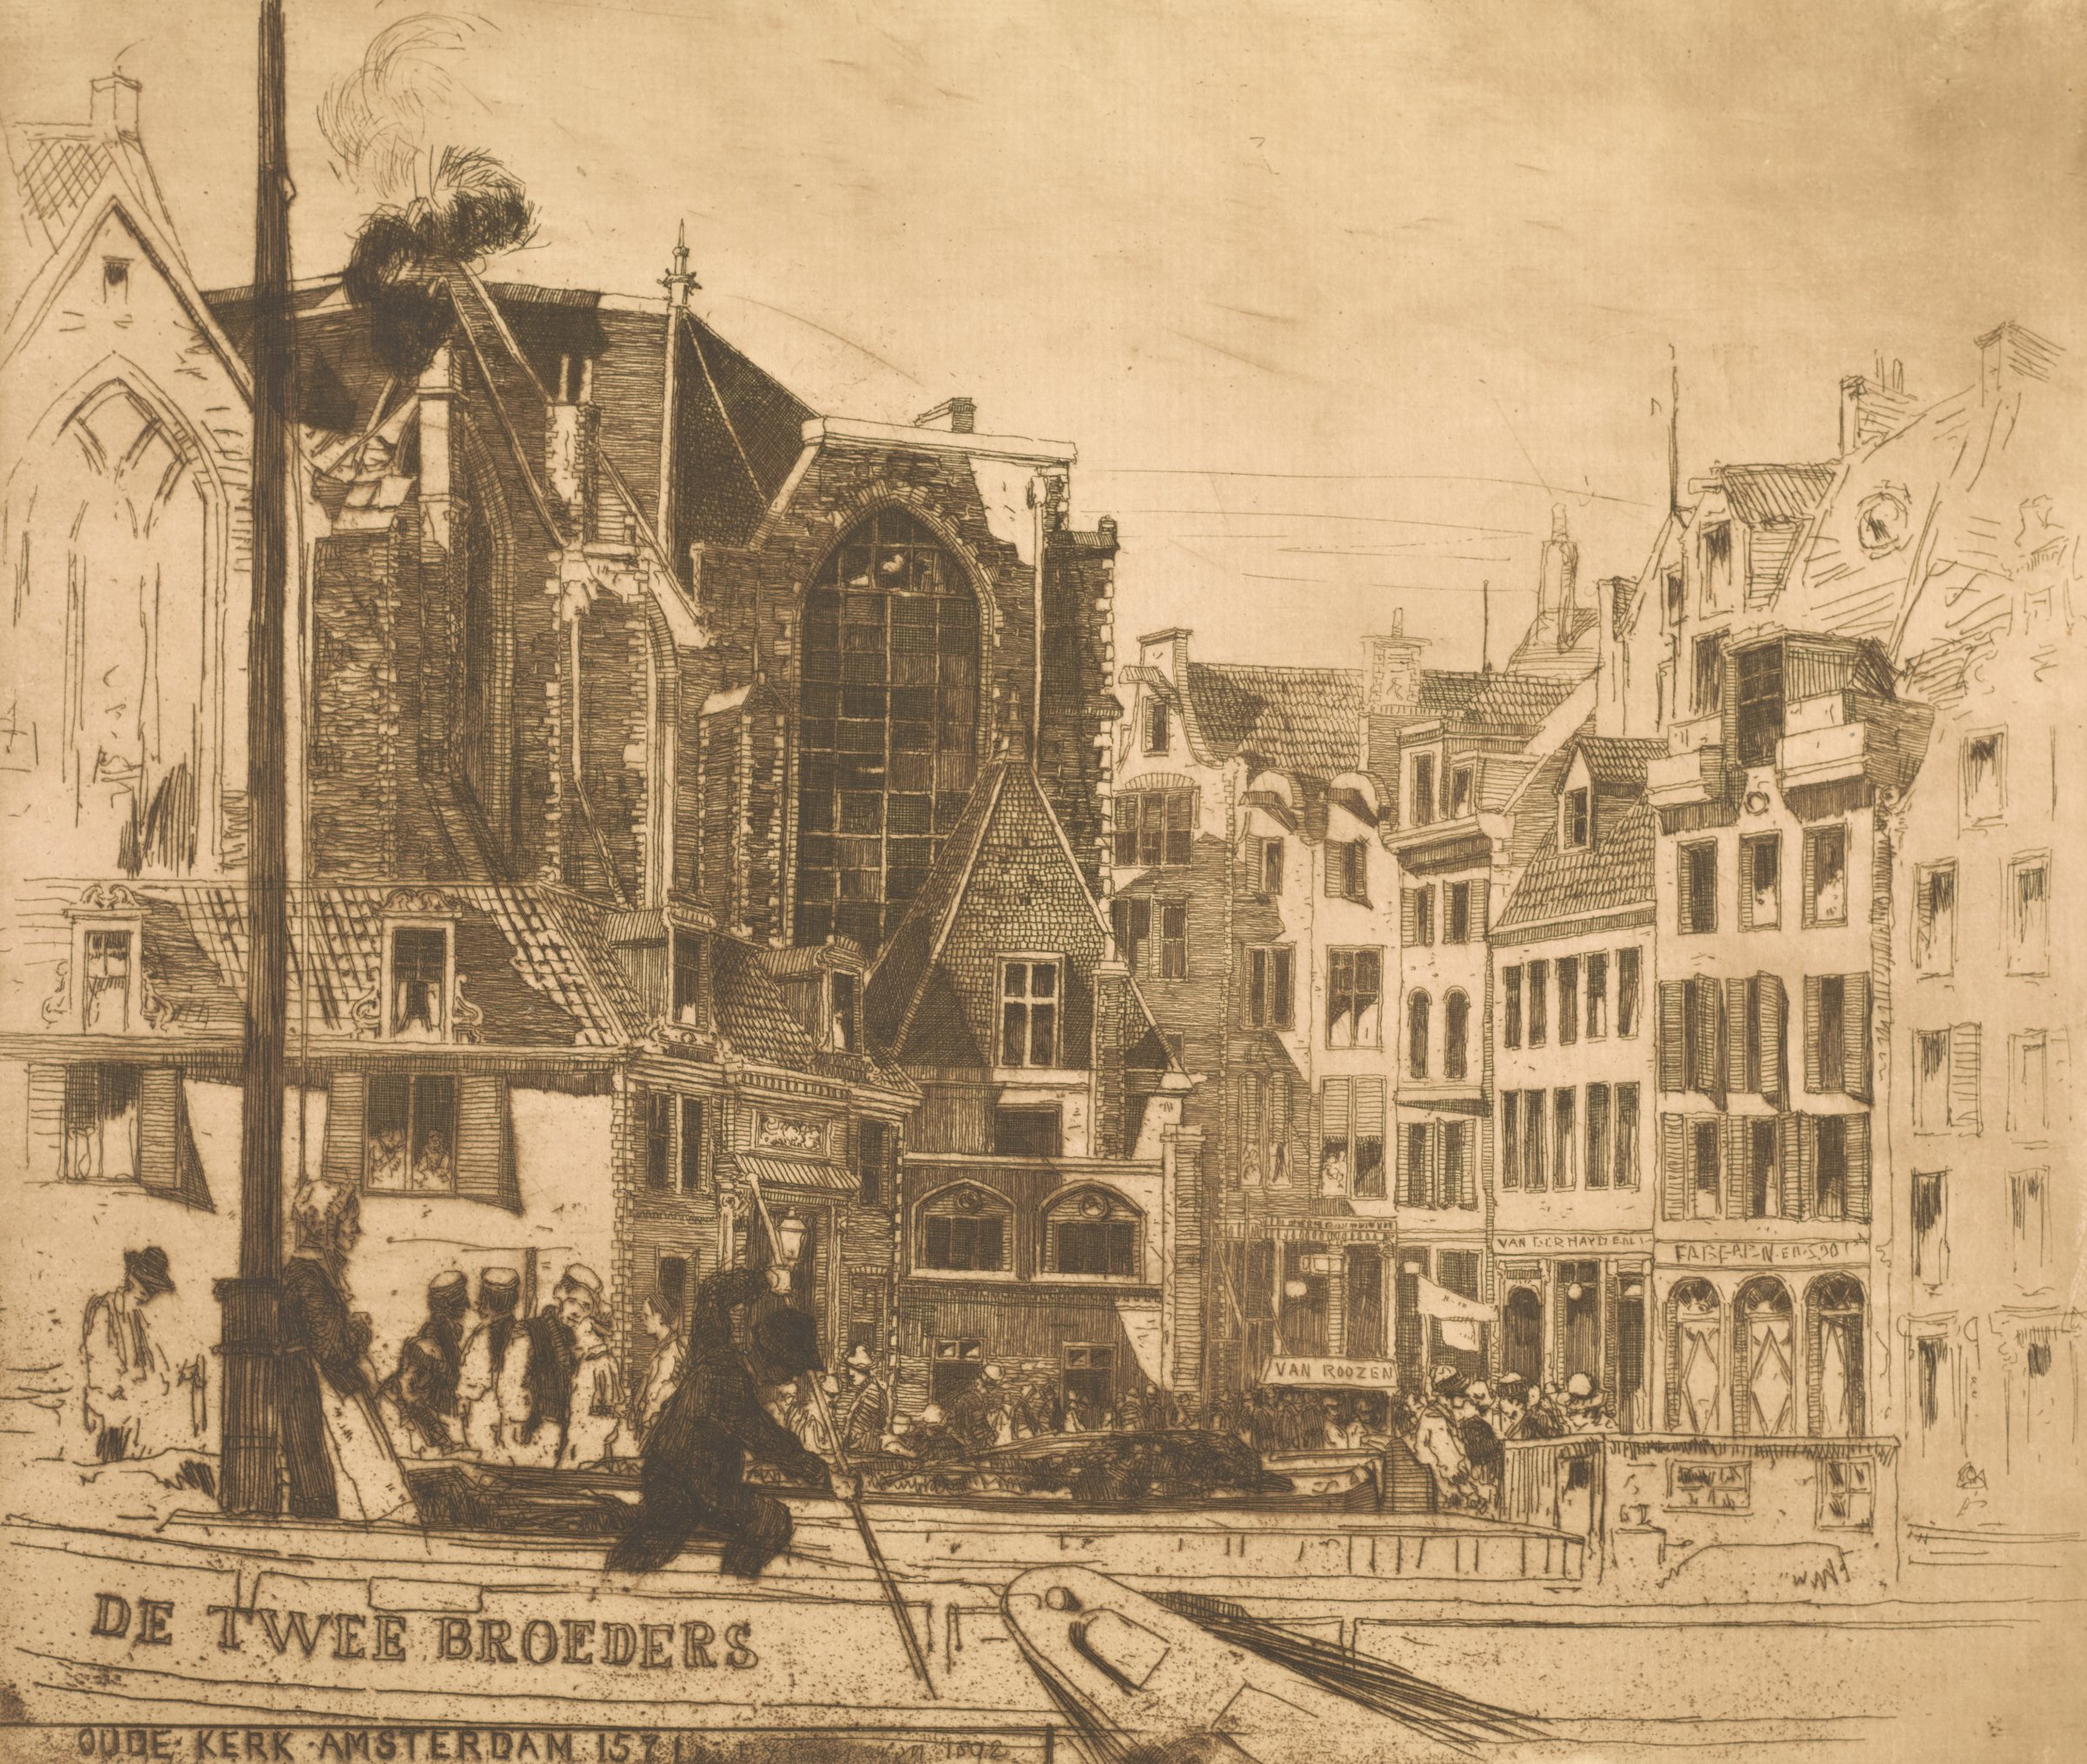 View of Oude Kerk with people walking through the street as boats pass by in the foreground.